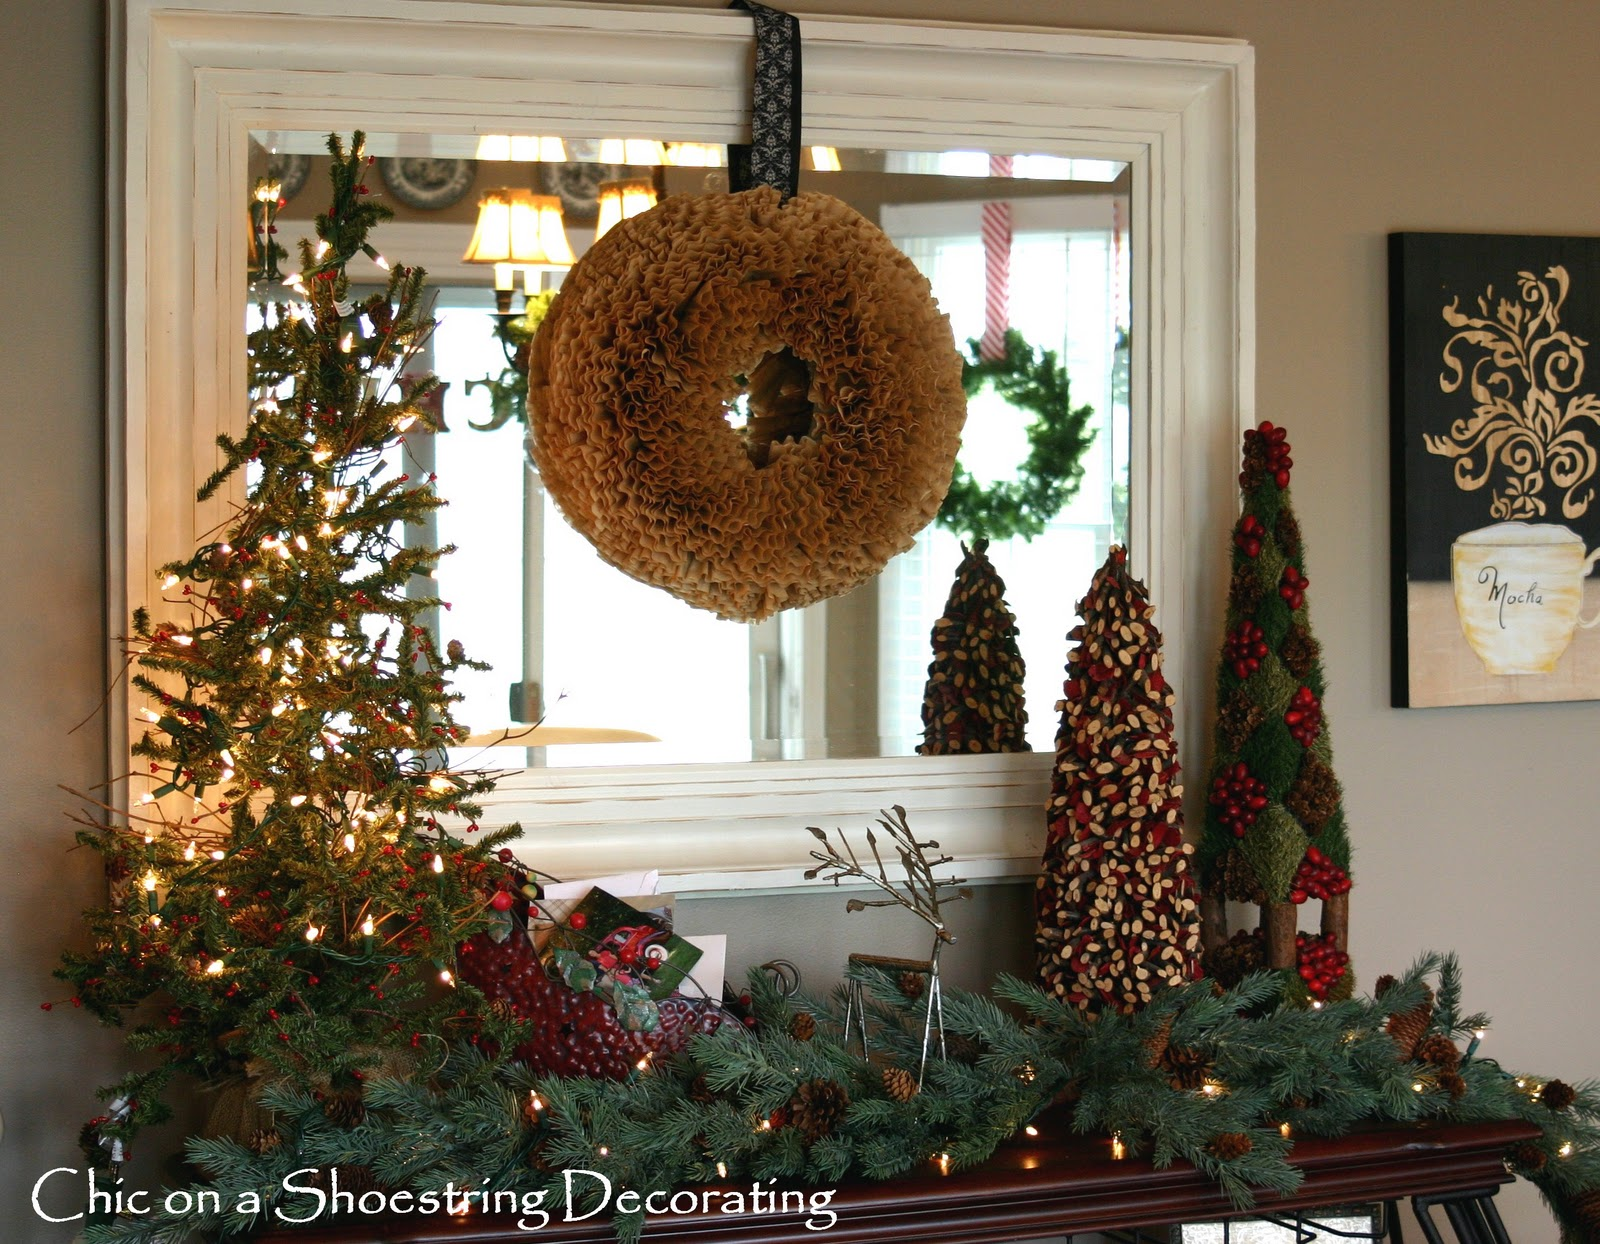 Chic on a Shoestring Decorating: A Rustic Christmas Vignette